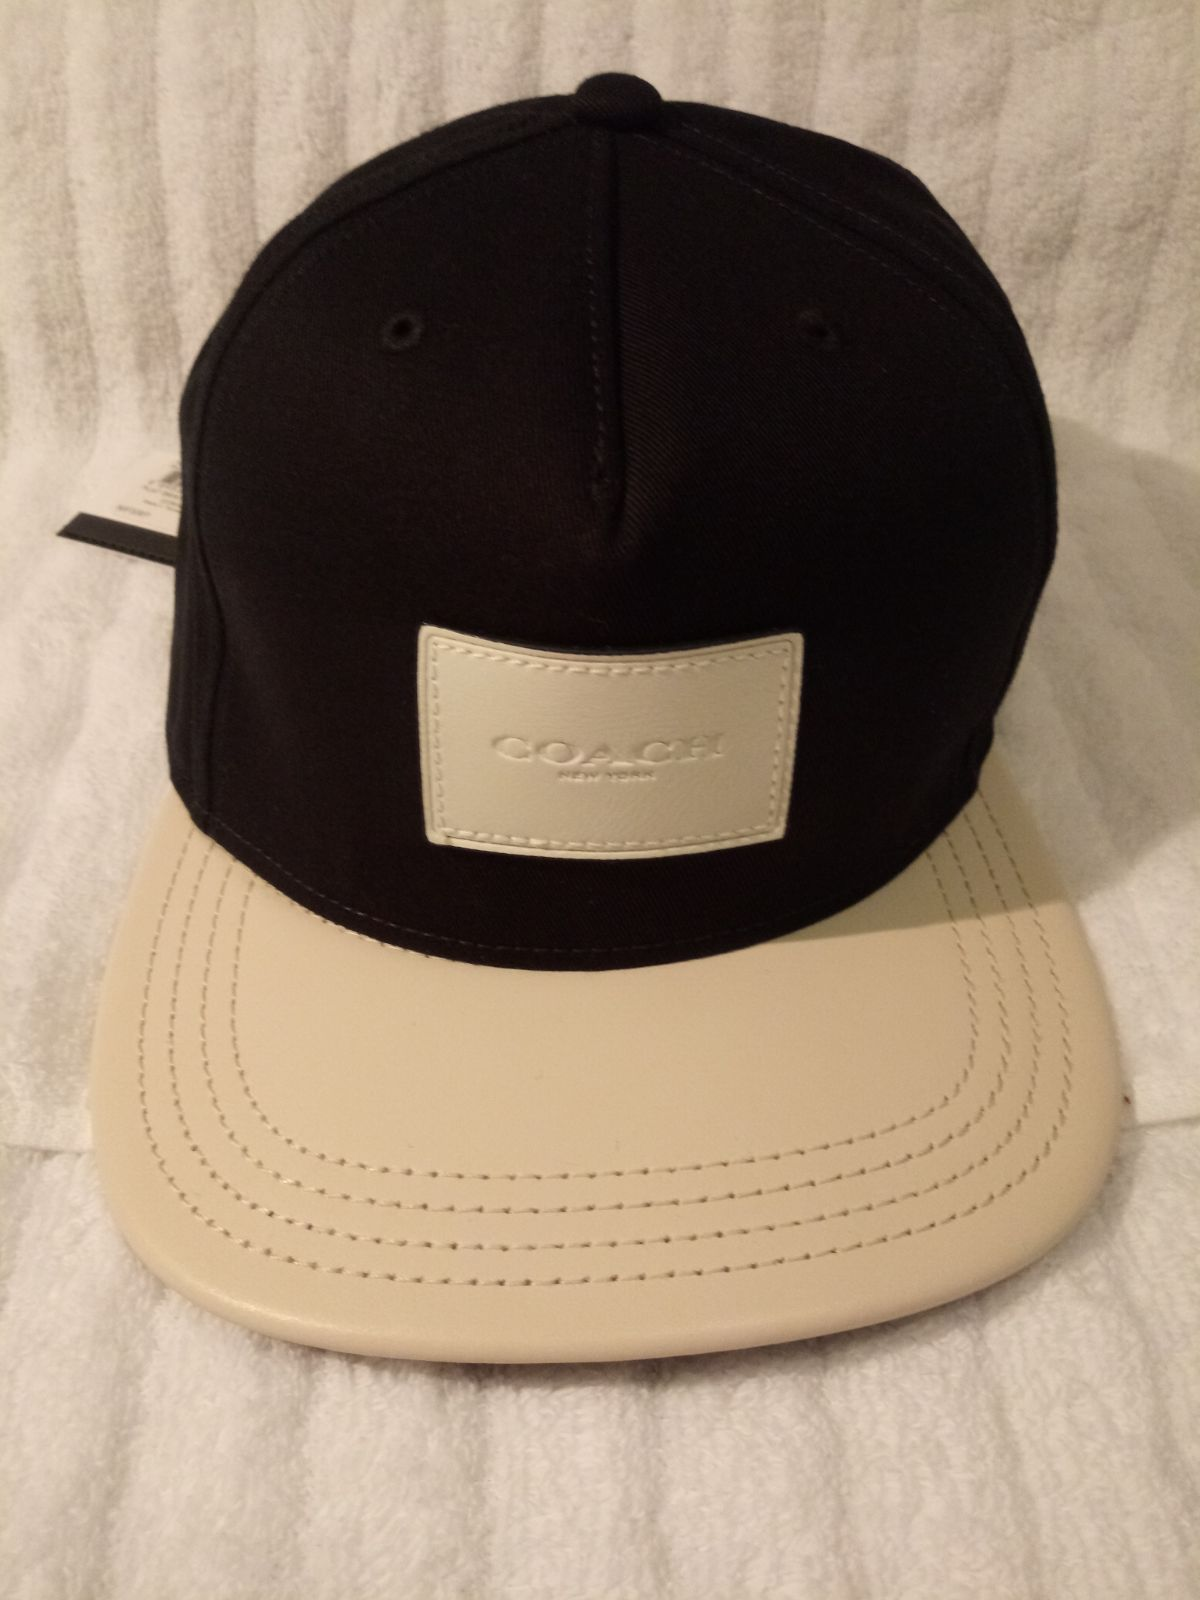 COACH MENS:  Sports cap